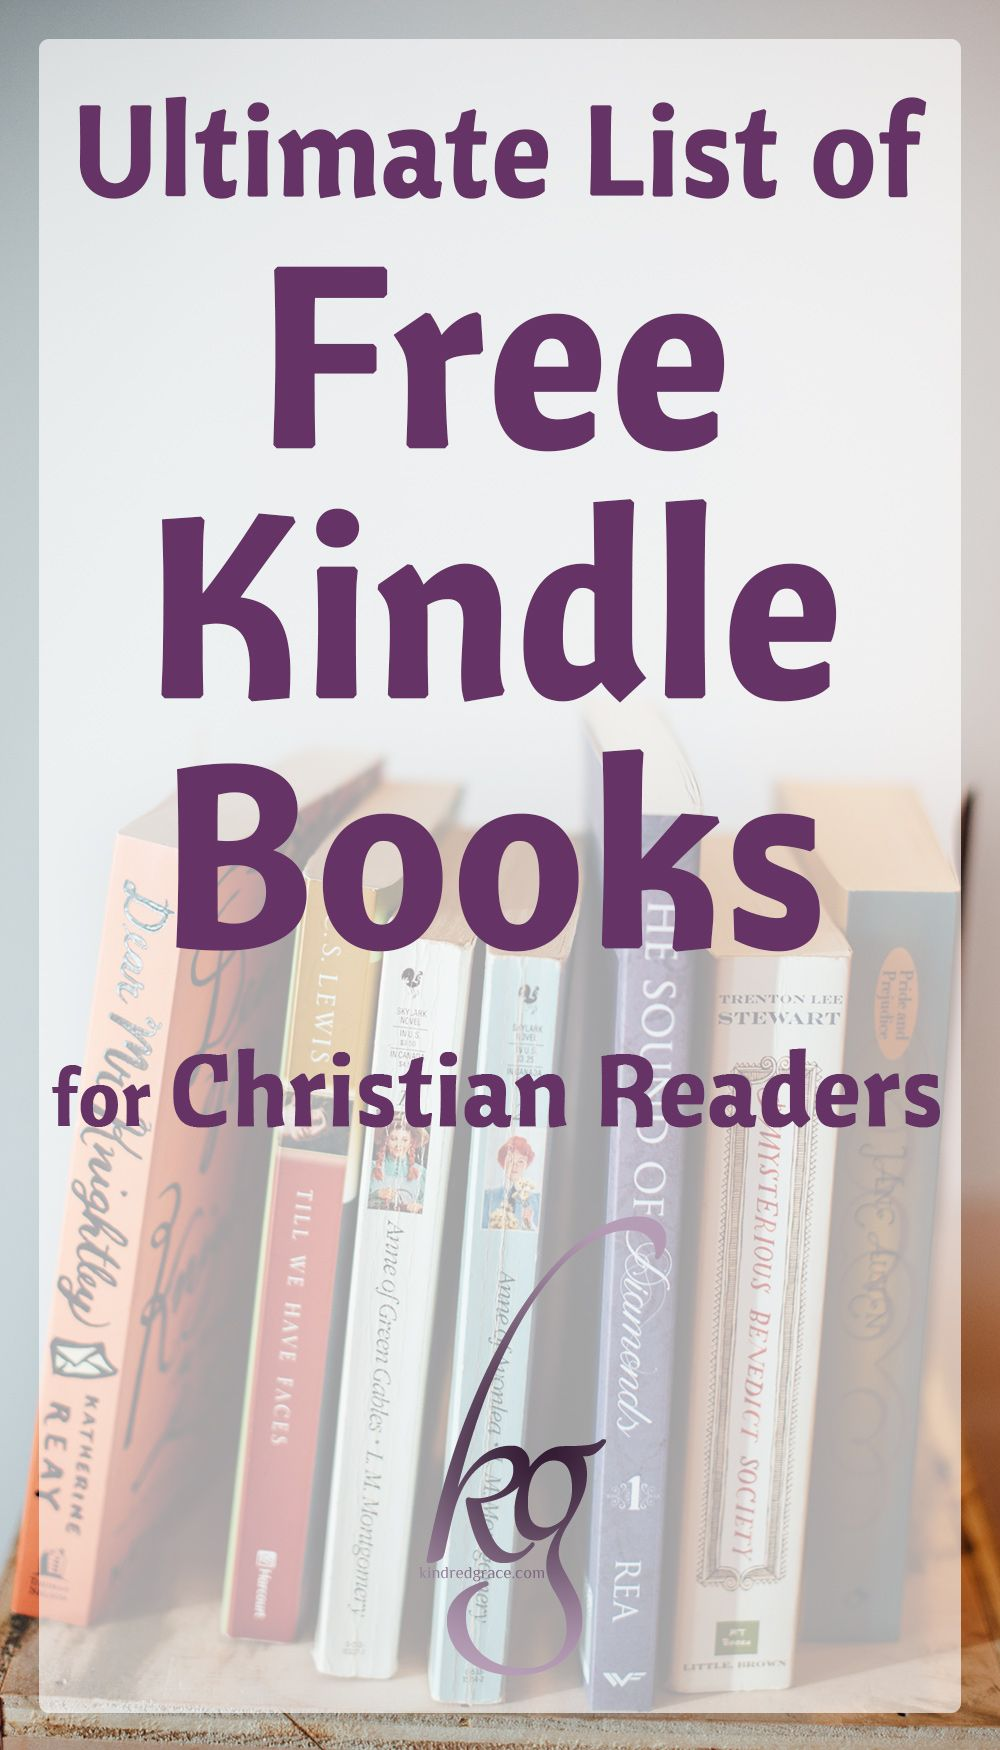 Ultimate List of Free Kindle Books for Christian Readers | Great